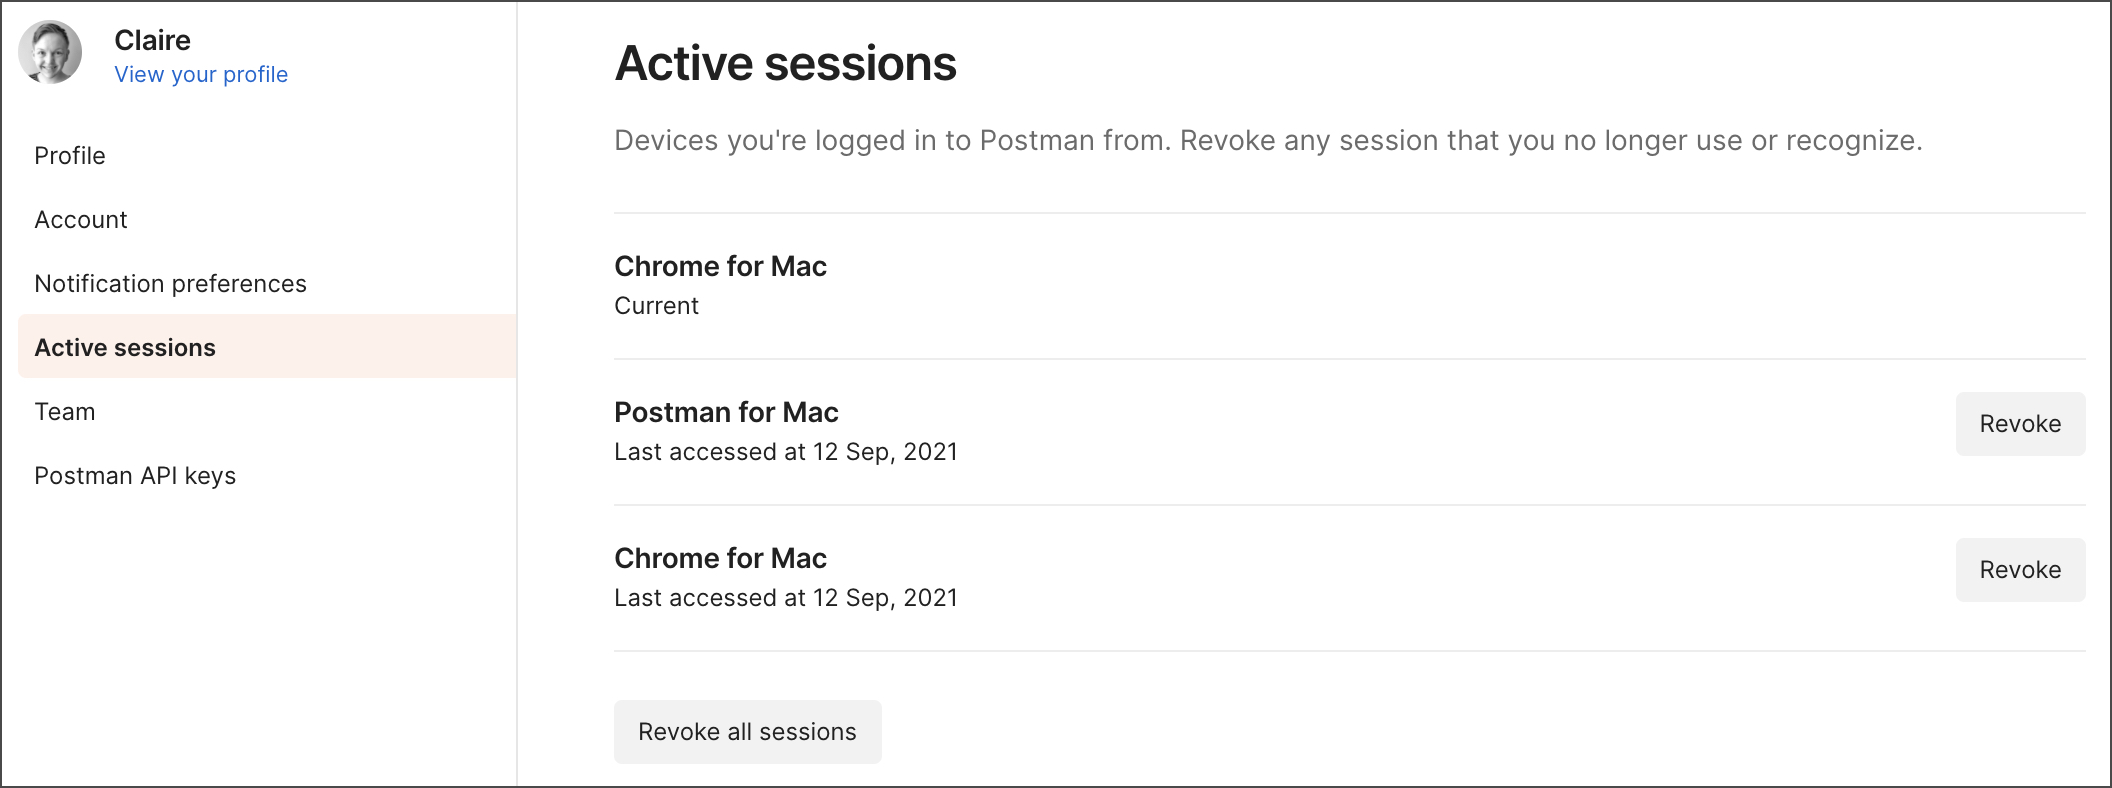 Active sessions